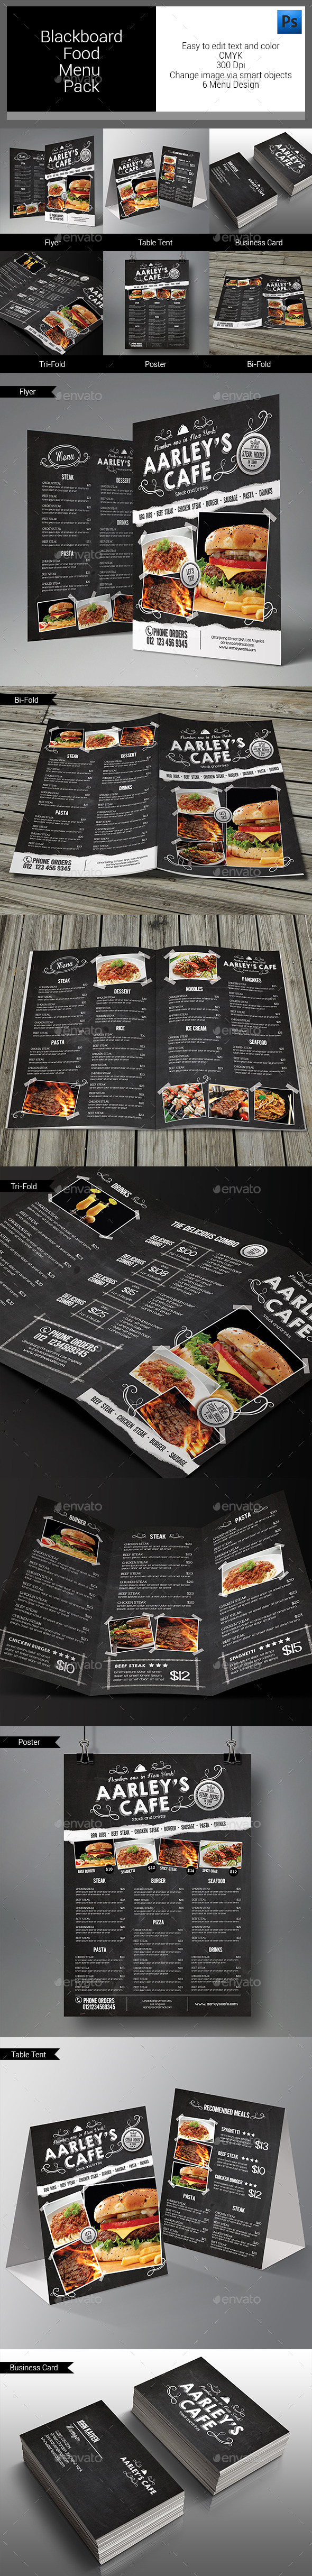 GraphicRiver Blackboard Food Menu Bundle 11020267